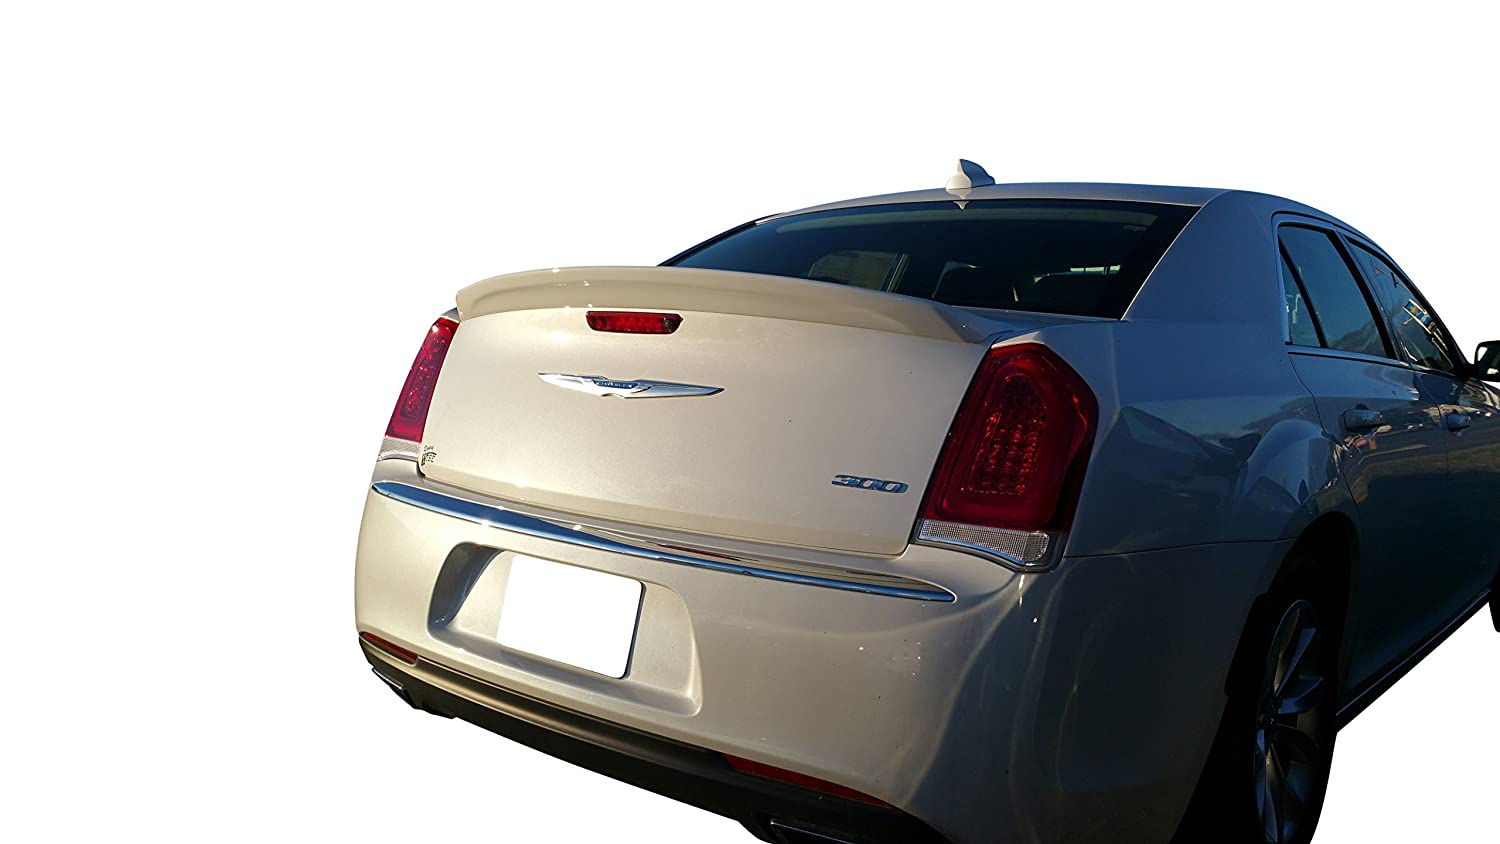 Facory Style SRT Spoiler for the Chrysler 300 2012-2018 Painted in the Factory Paint Code of Your Choice 563 Billet PSC Spoiler and Wing King ®